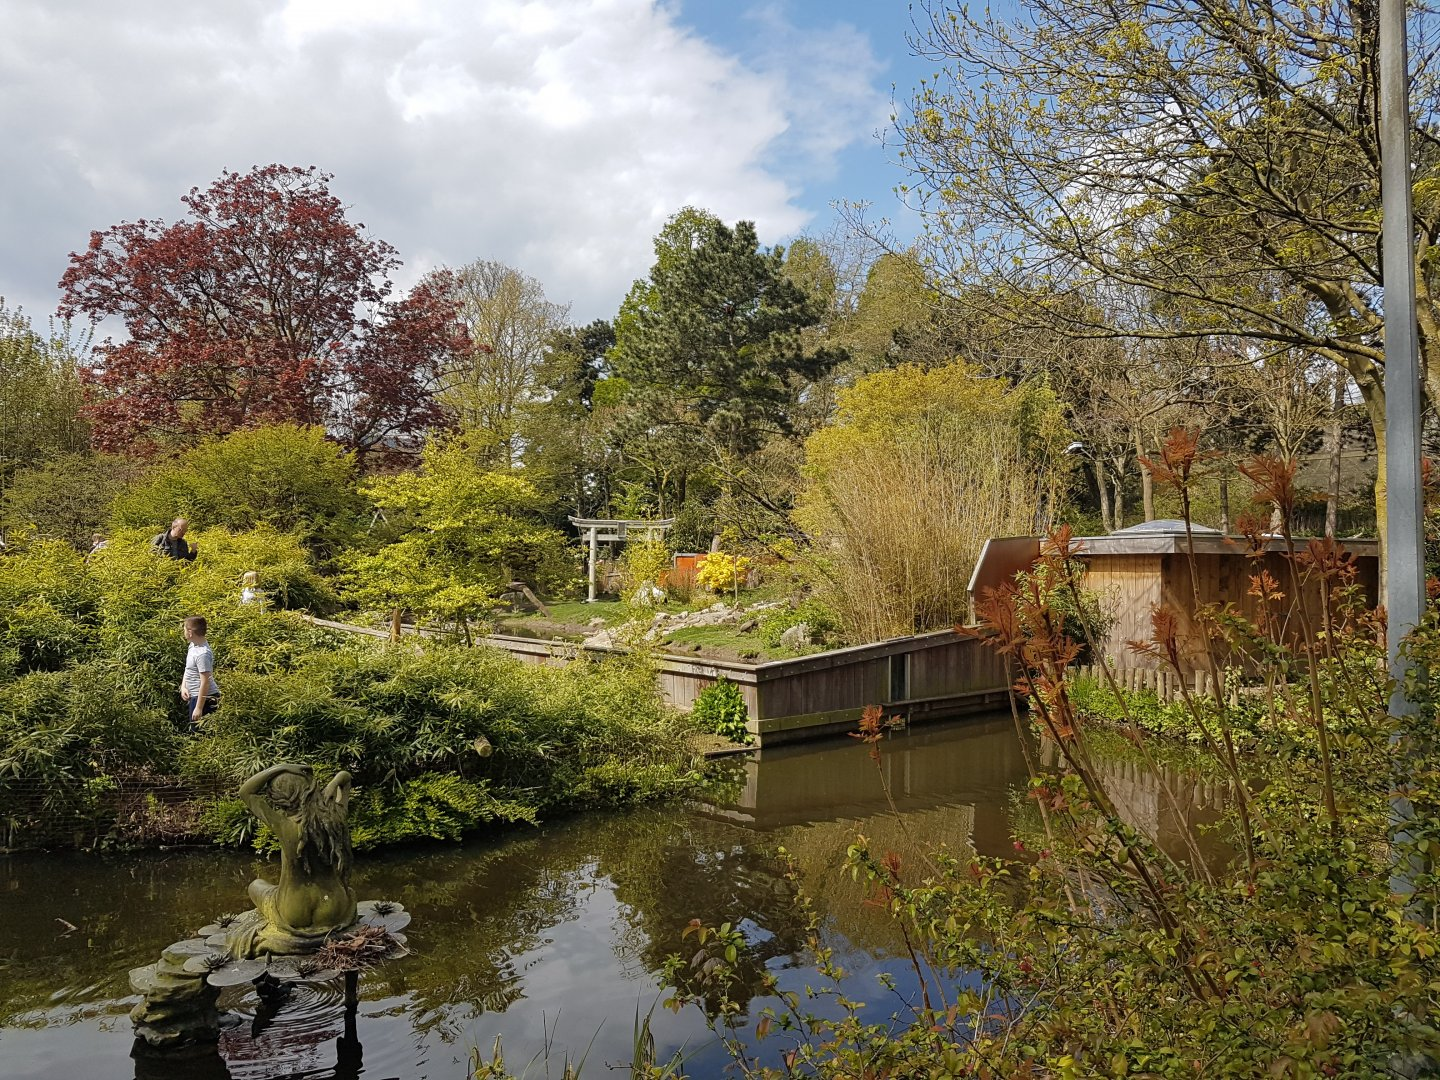 Marvelous Small Chinese Garden Pictures - Best Image Engine ...